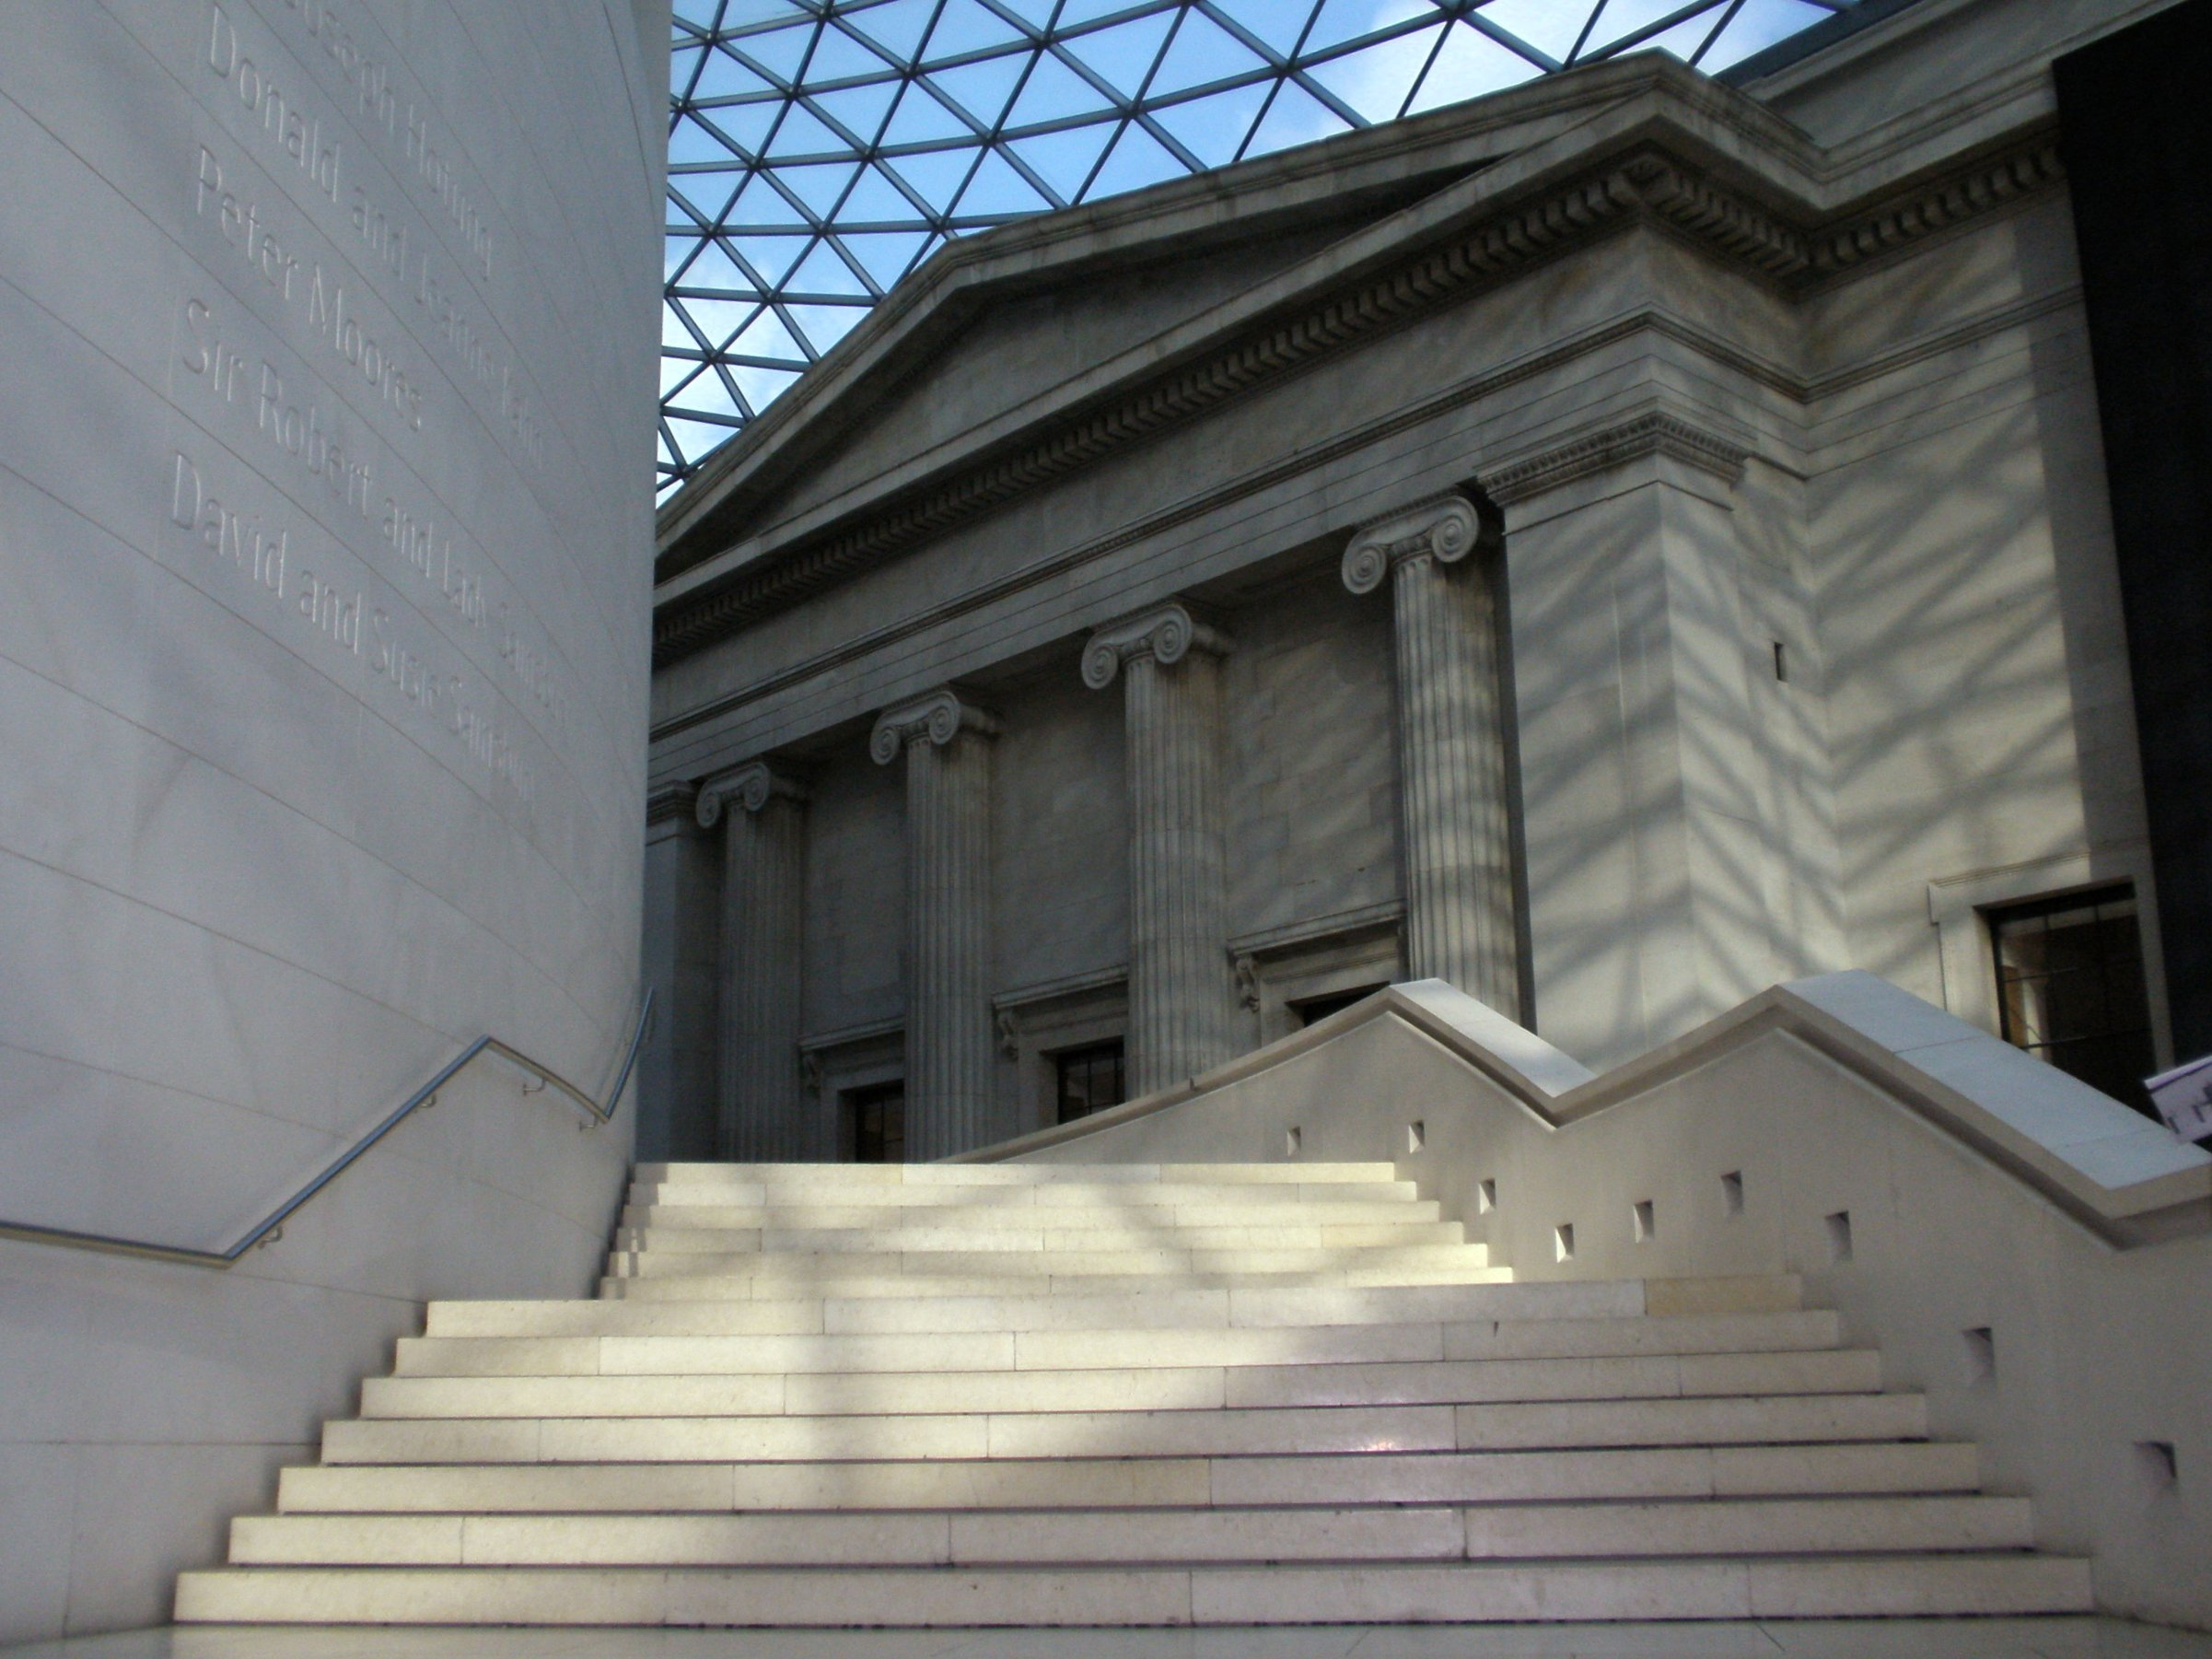 The Great Court. British Museum © Amanda Slater/ Flickr https://flic.kr/p/7cNHUo